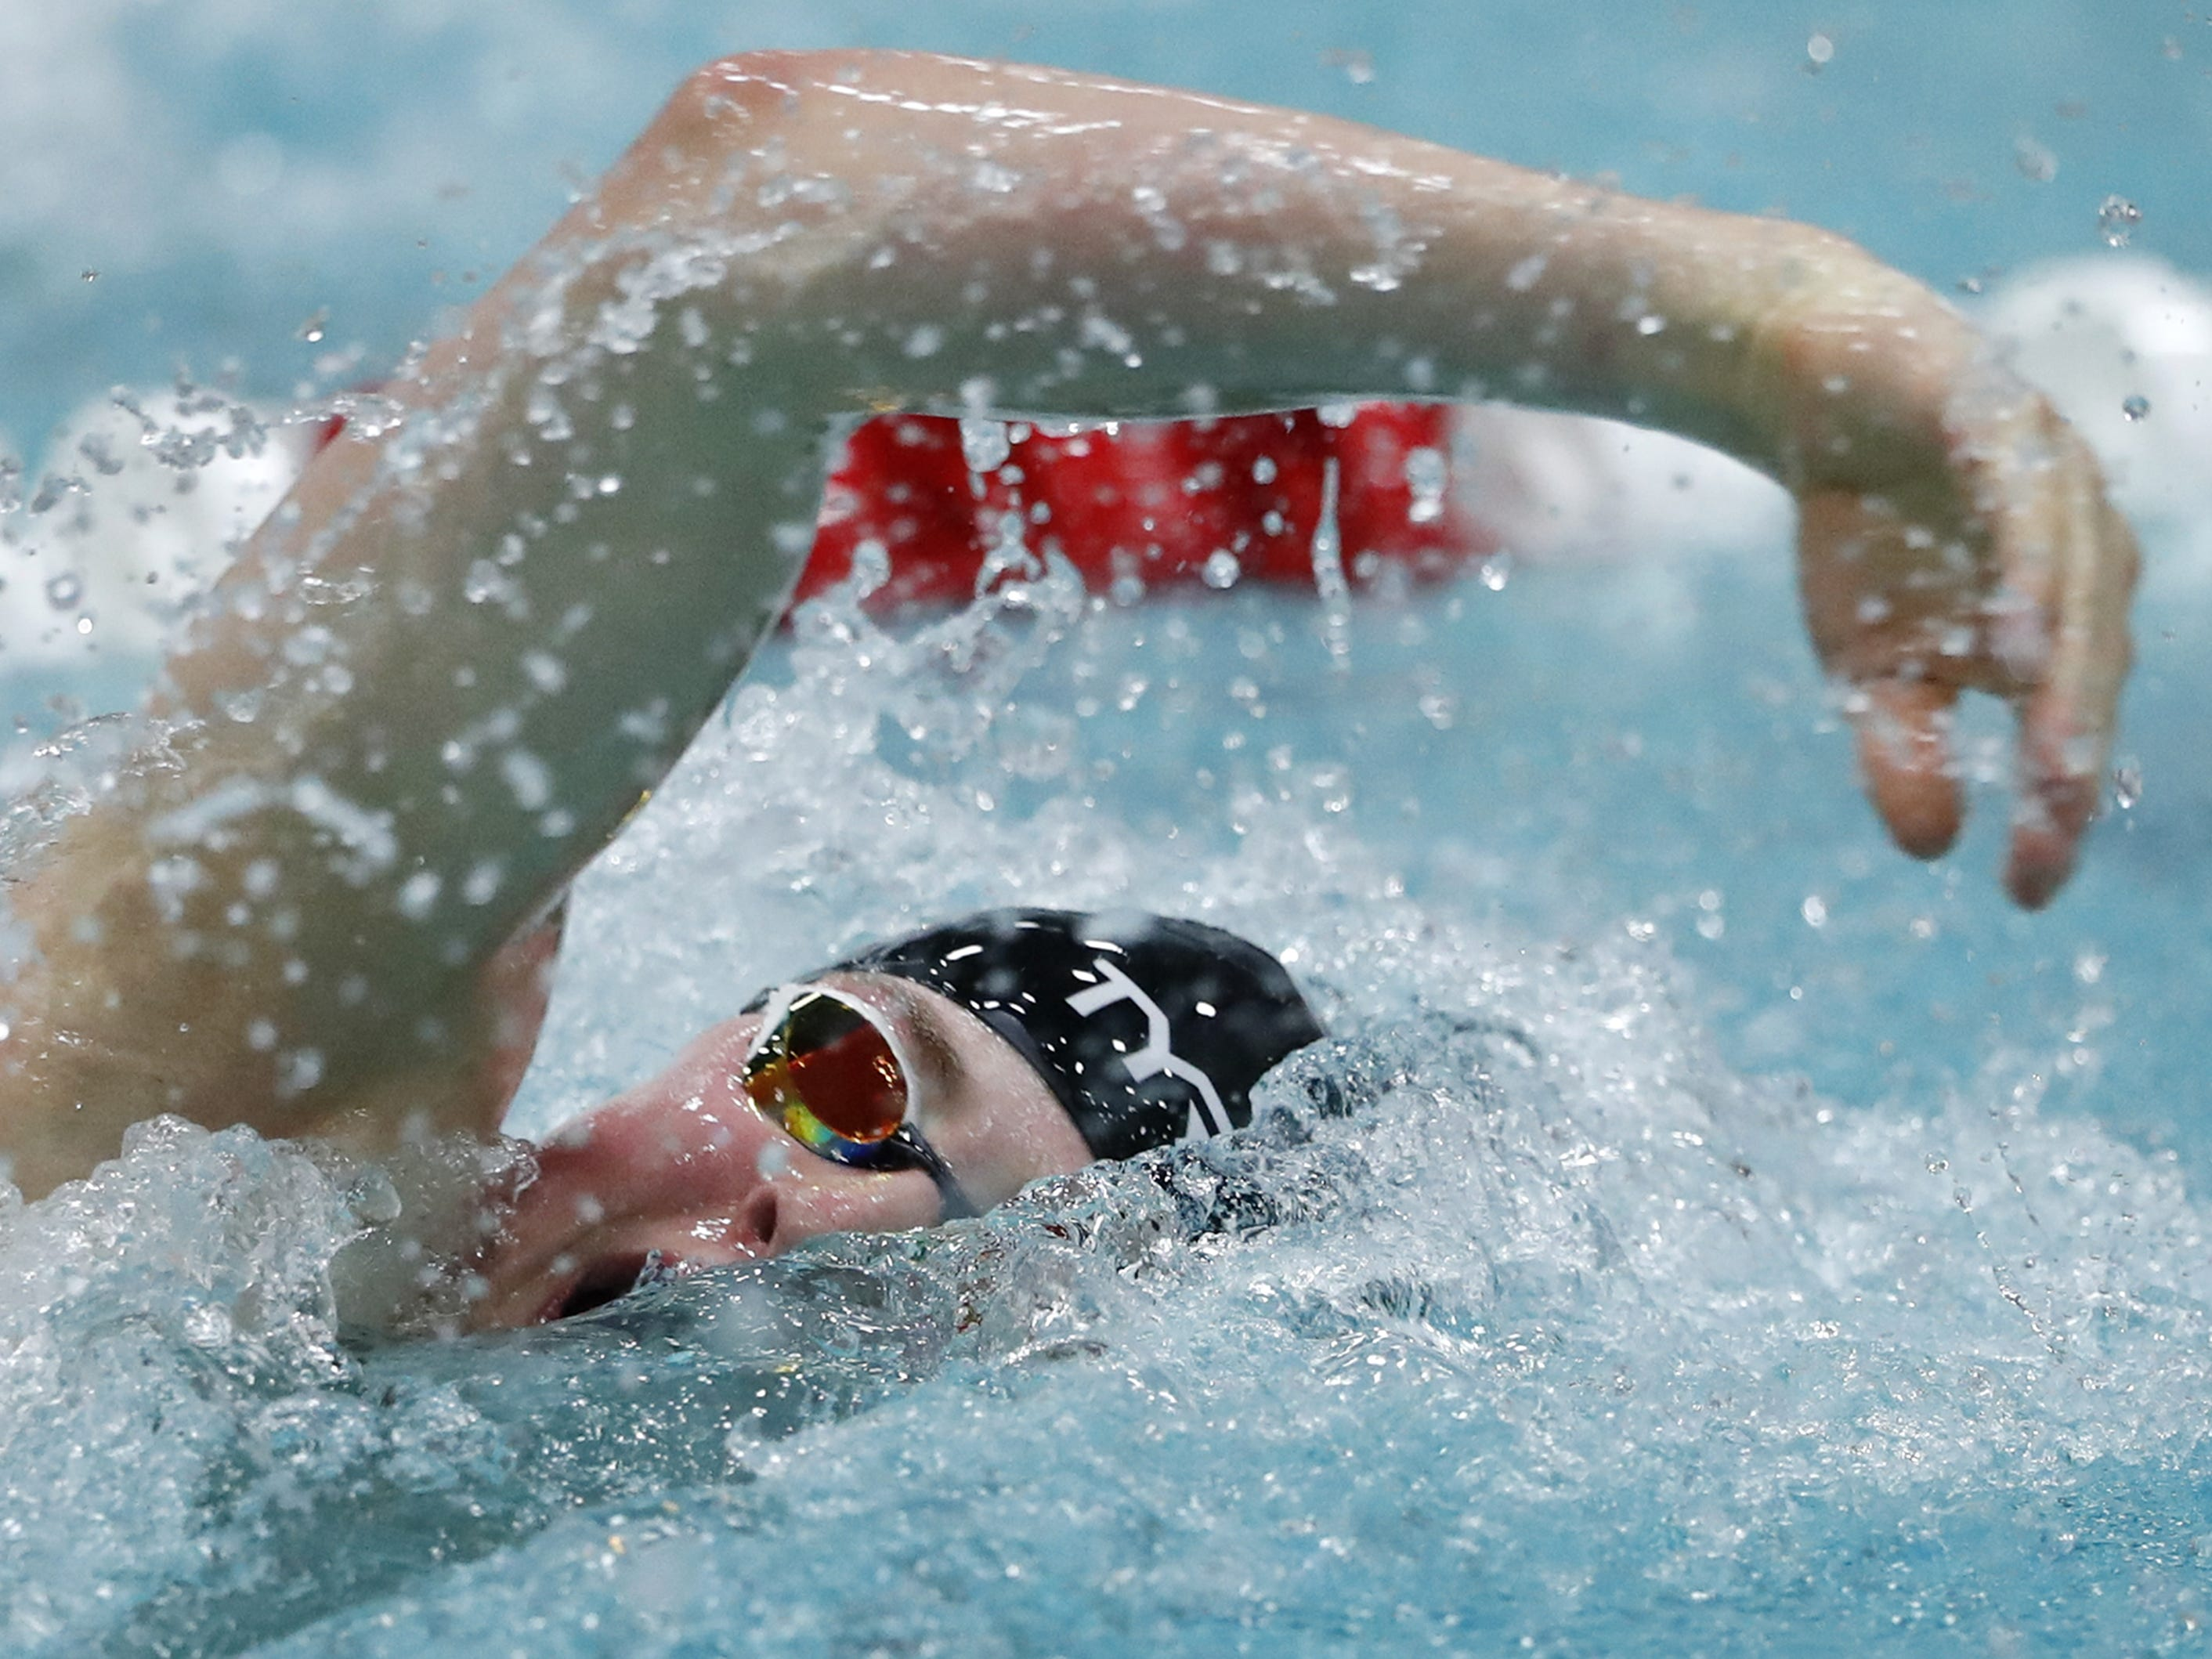 Stevens PointÕs Drew Harris races in the 500 yard freestyle during the Division 1 2019 State Boys Swimming and Diving Championships Saturday, Feb. 16, 2019, at the UW Natatorium in Madison, Wis. Danny Damiani/USA TODAY NETWORK-Wisconsin